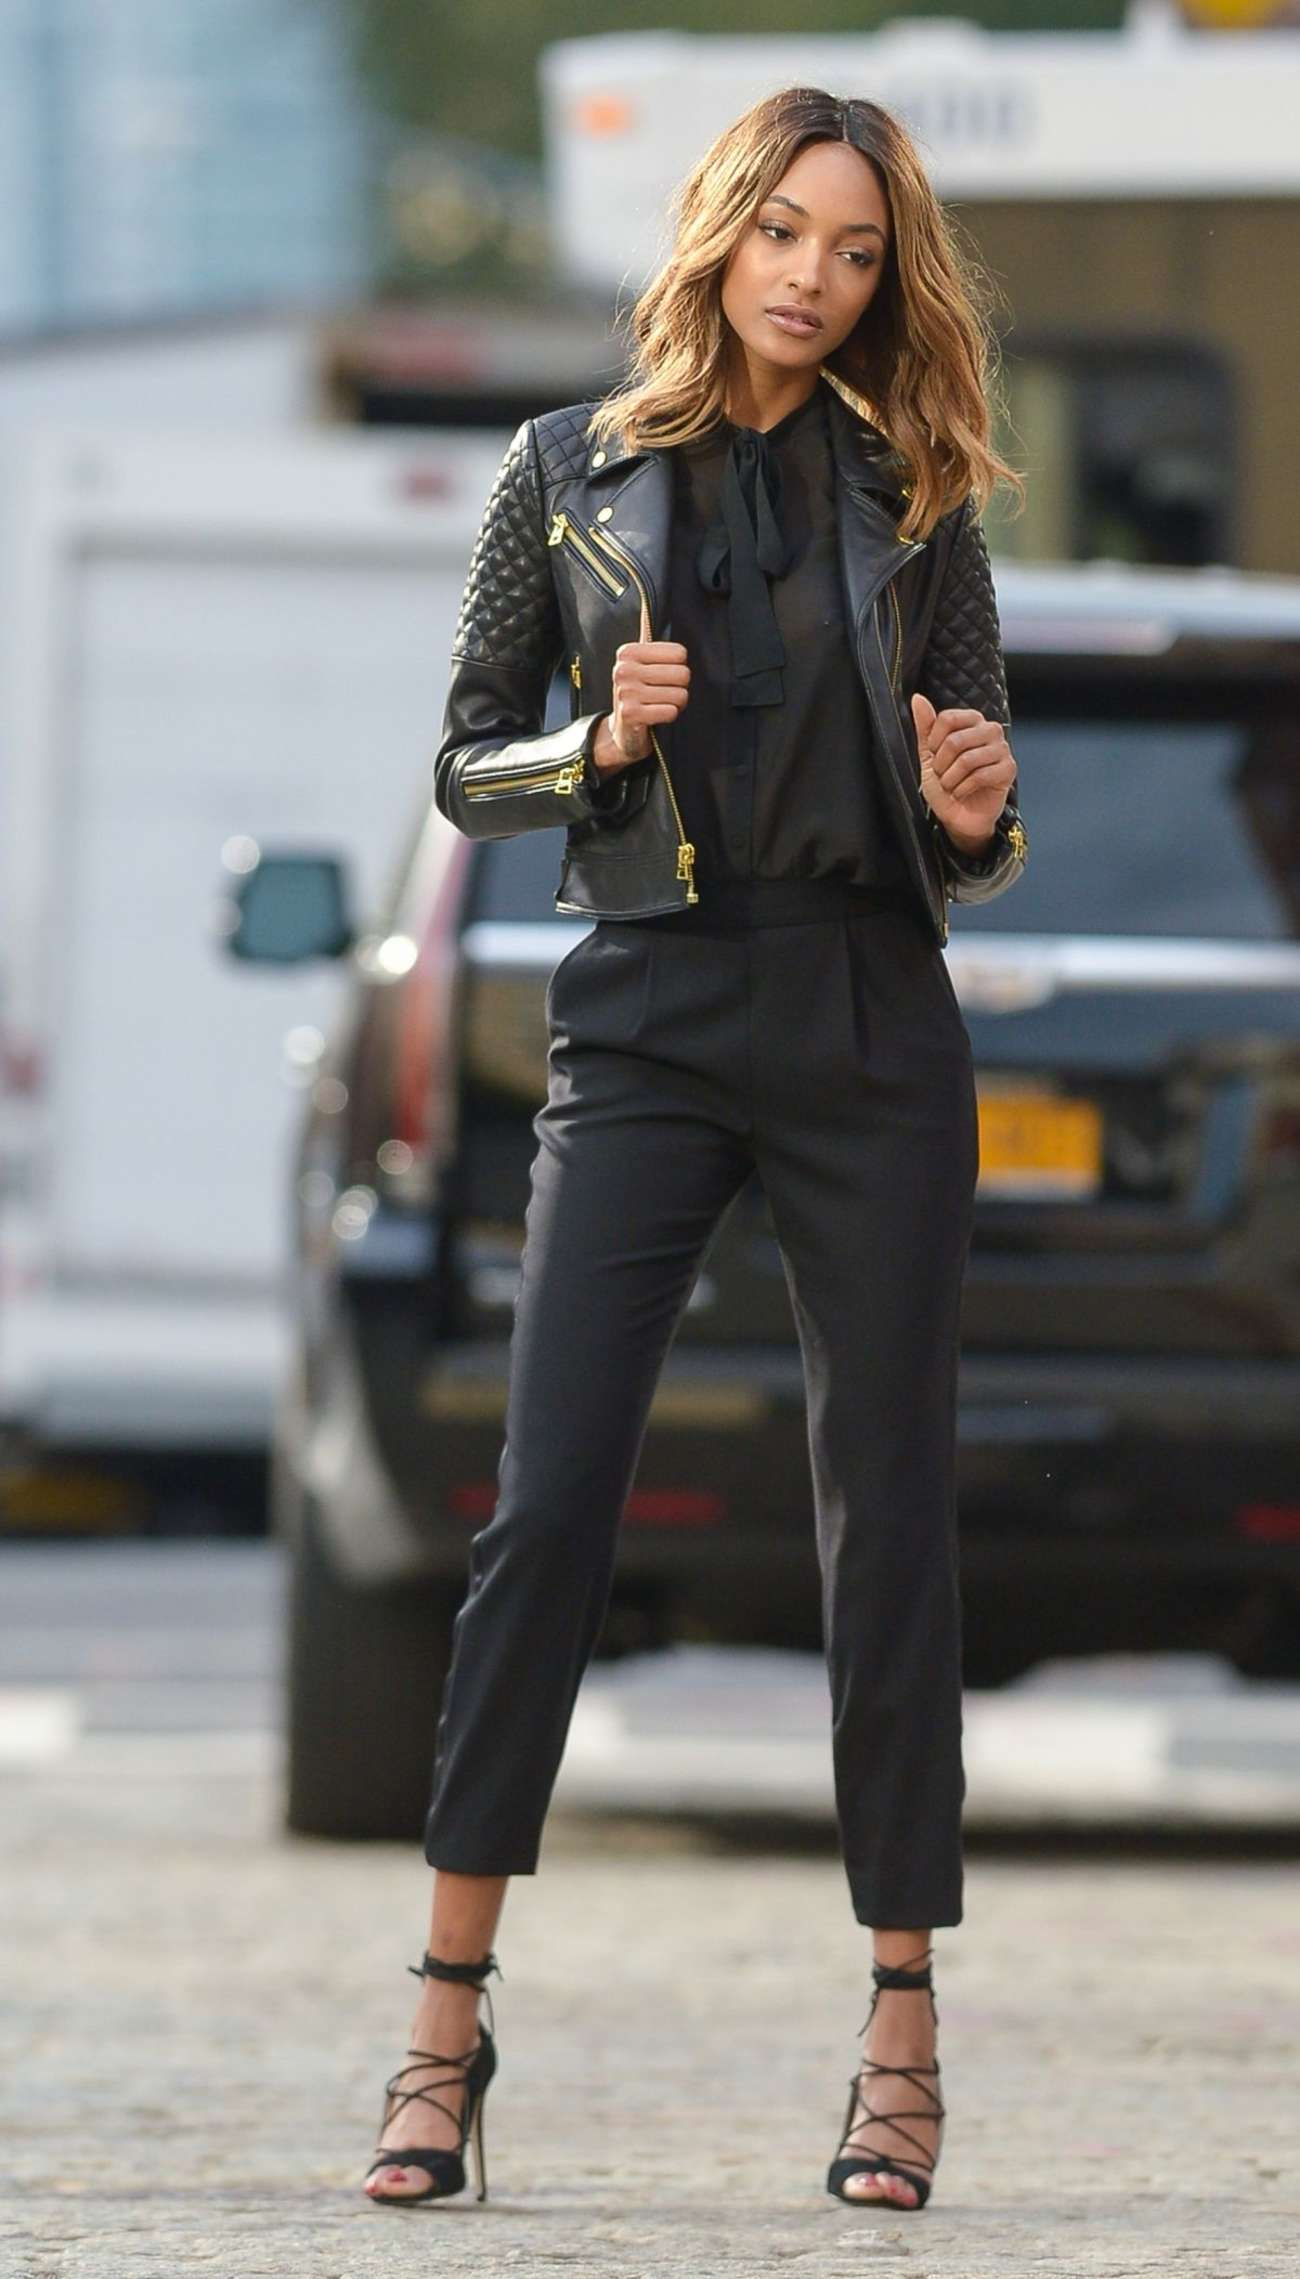 Jourdan Dunn Photoshoot in New York